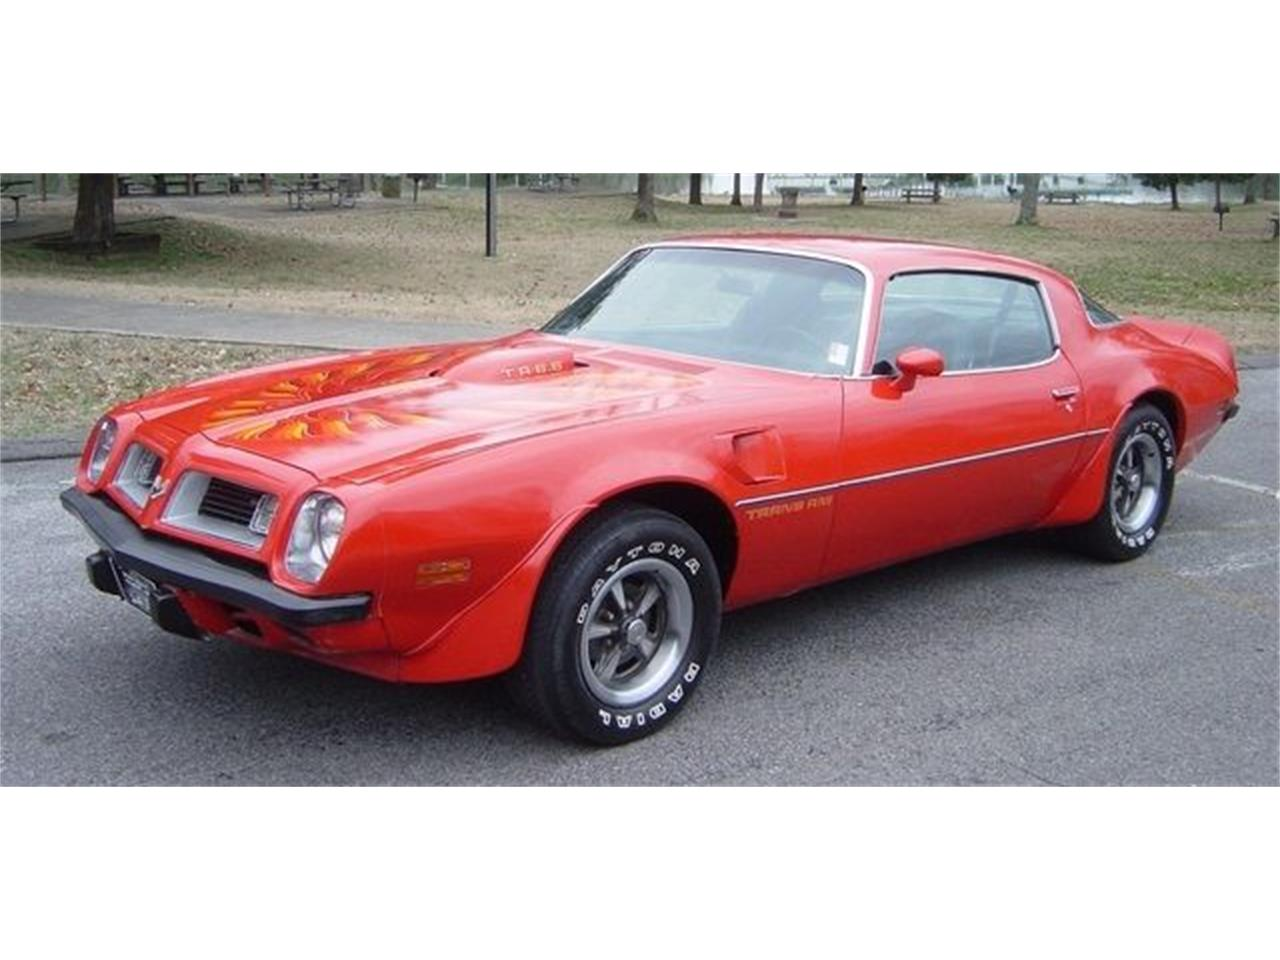 1975 Pontiac Firebird Trans Am For Sale In Hendersonville Tn Classiccarsbay Com